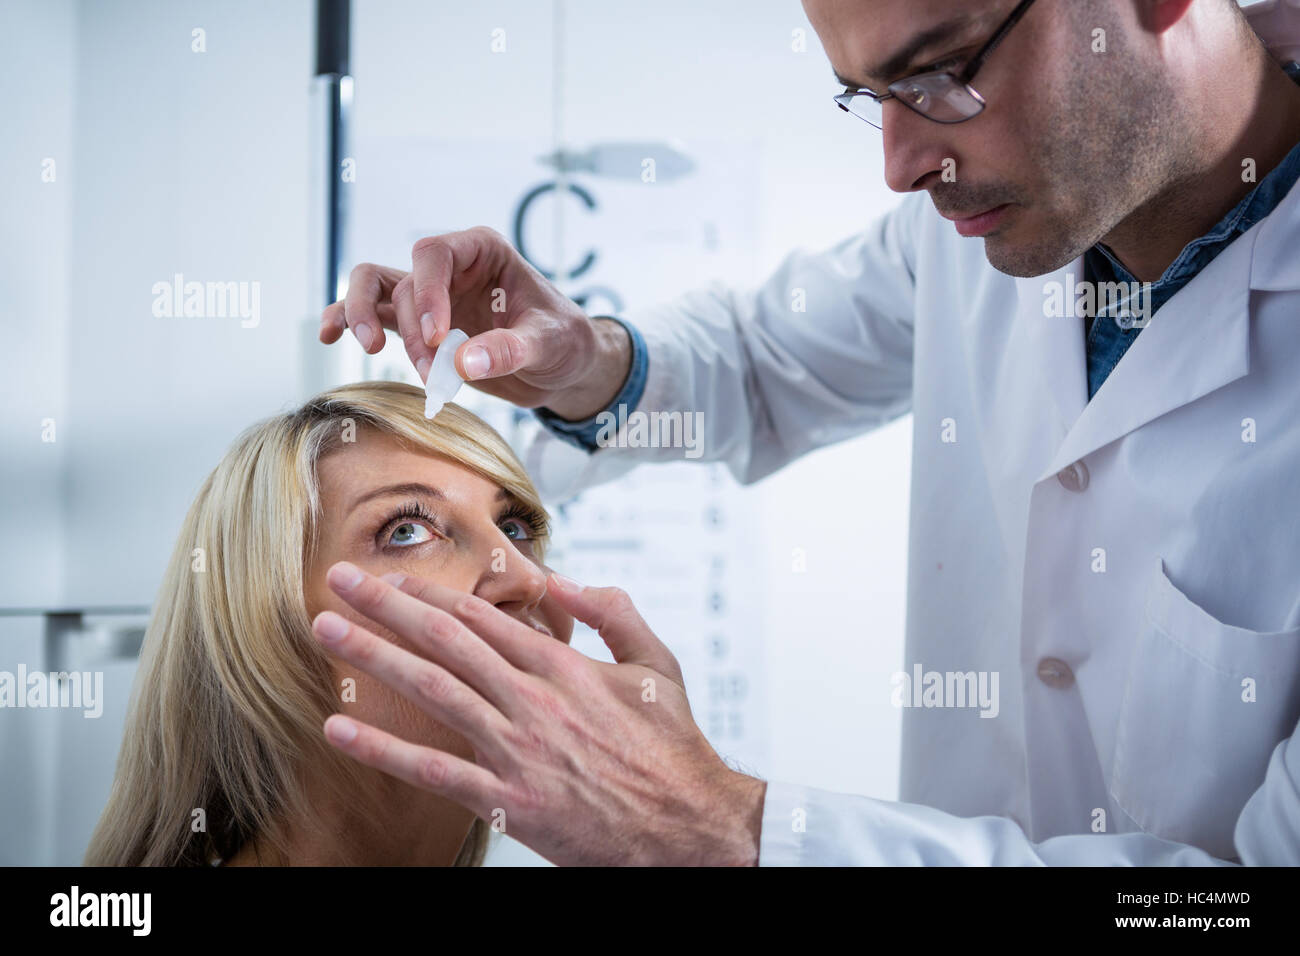 Optometrist putting drops into patients eyes - Stock Image